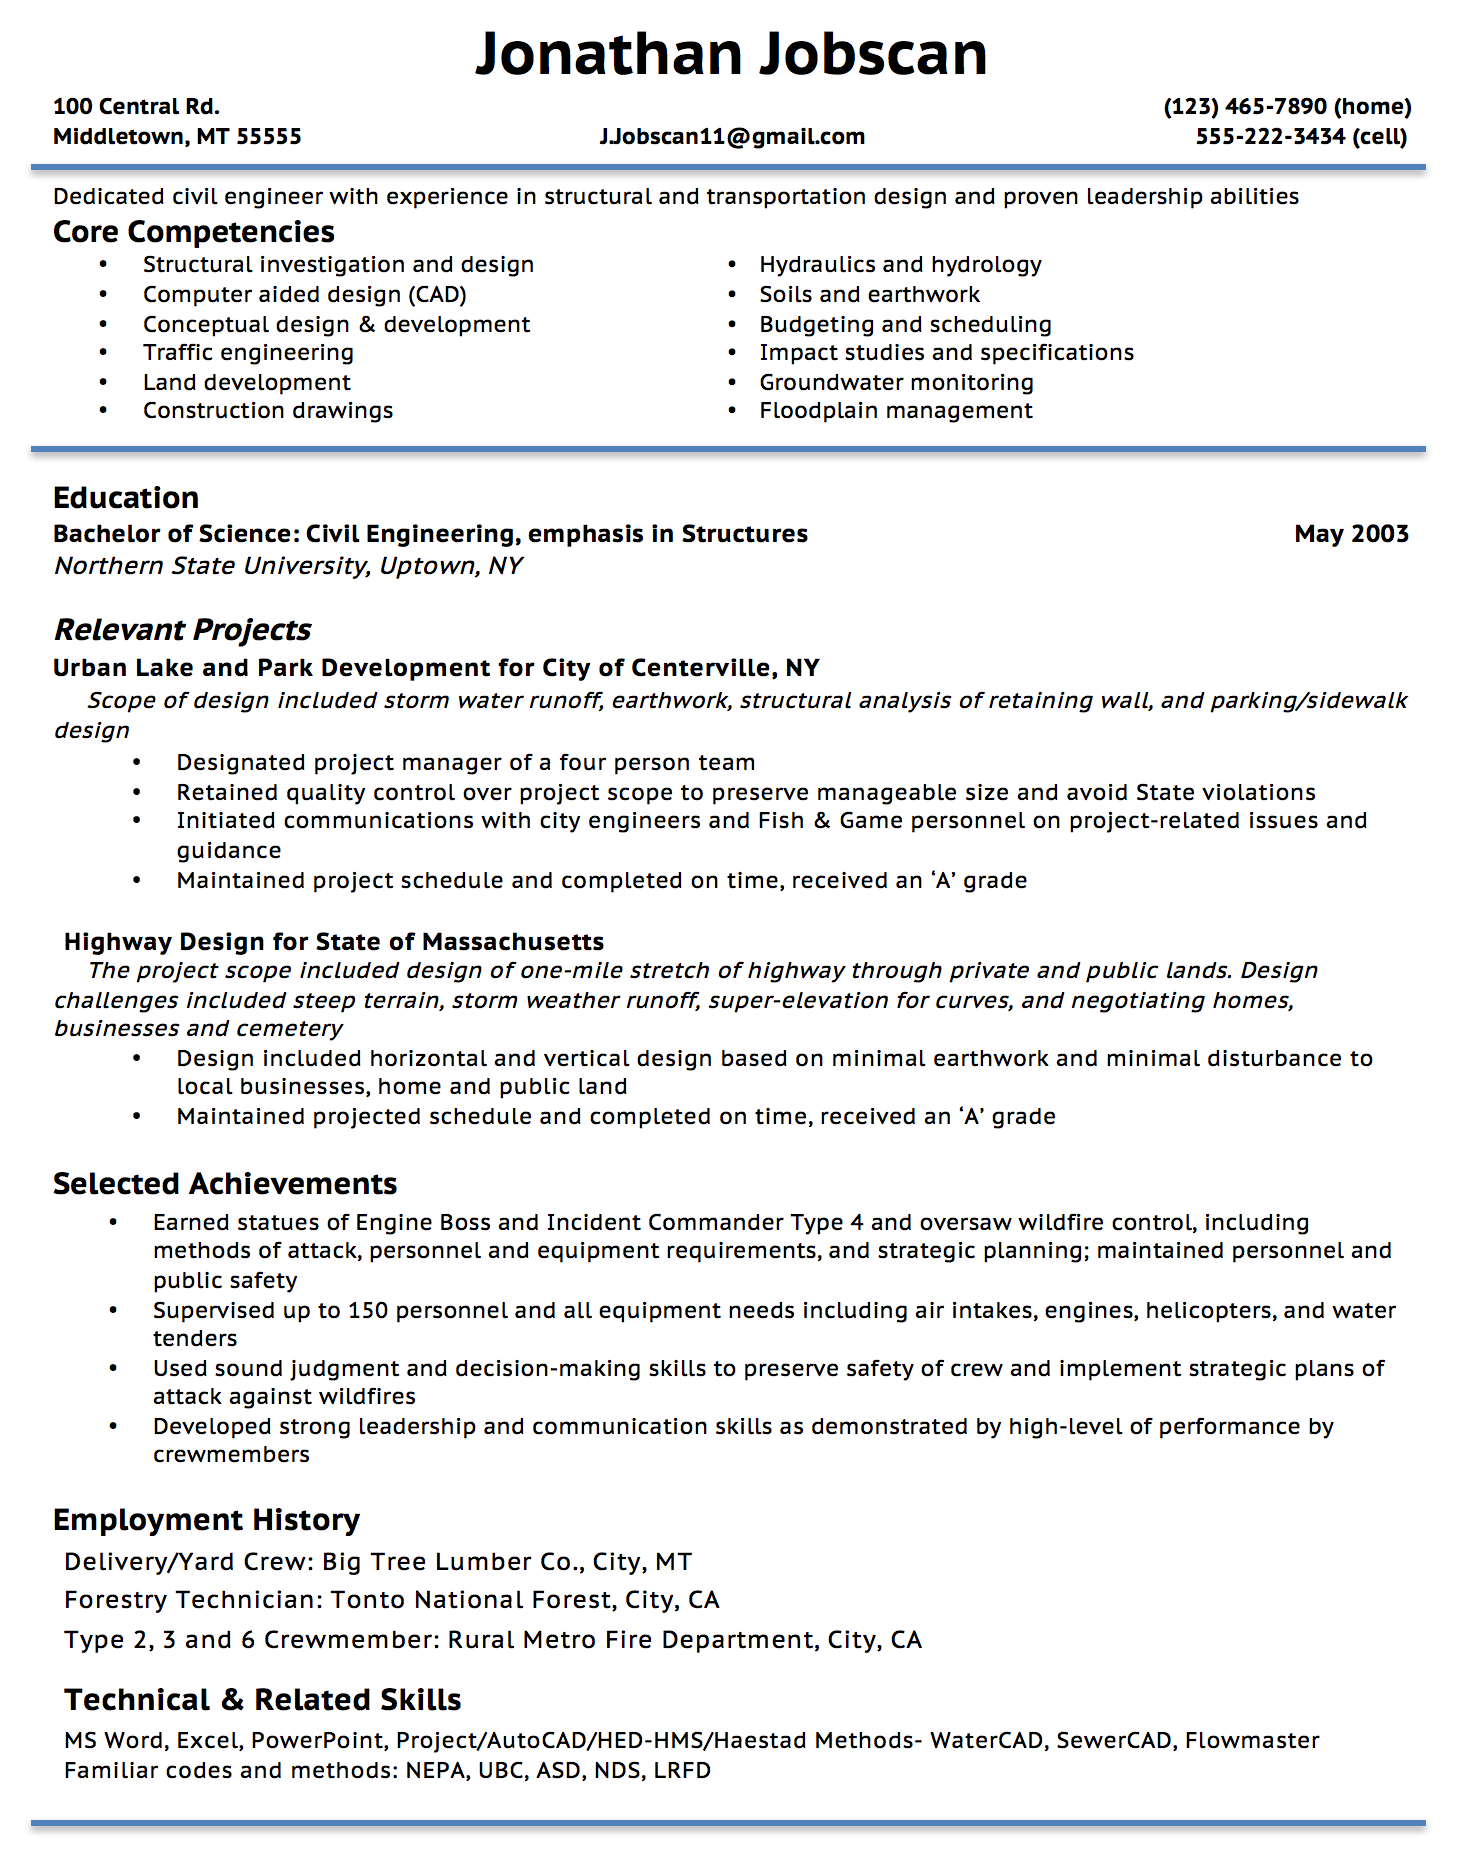 Opposenewapstandardsus  Pleasant Resume Writing Guide  Jobscan With Extraordinary Example Of A Functional Resume Format With Alluring Job Descriptions For Resume Also Resumes Free In Addition Pastry Chef Resume And Scholarship Resume Template As Well As Accounting Intern Resume Additionally Hha Resume From Jobscanco With Opposenewapstandardsus  Extraordinary Resume Writing Guide  Jobscan With Alluring Example Of A Functional Resume Format And Pleasant Job Descriptions For Resume Also Resumes Free In Addition Pastry Chef Resume From Jobscanco